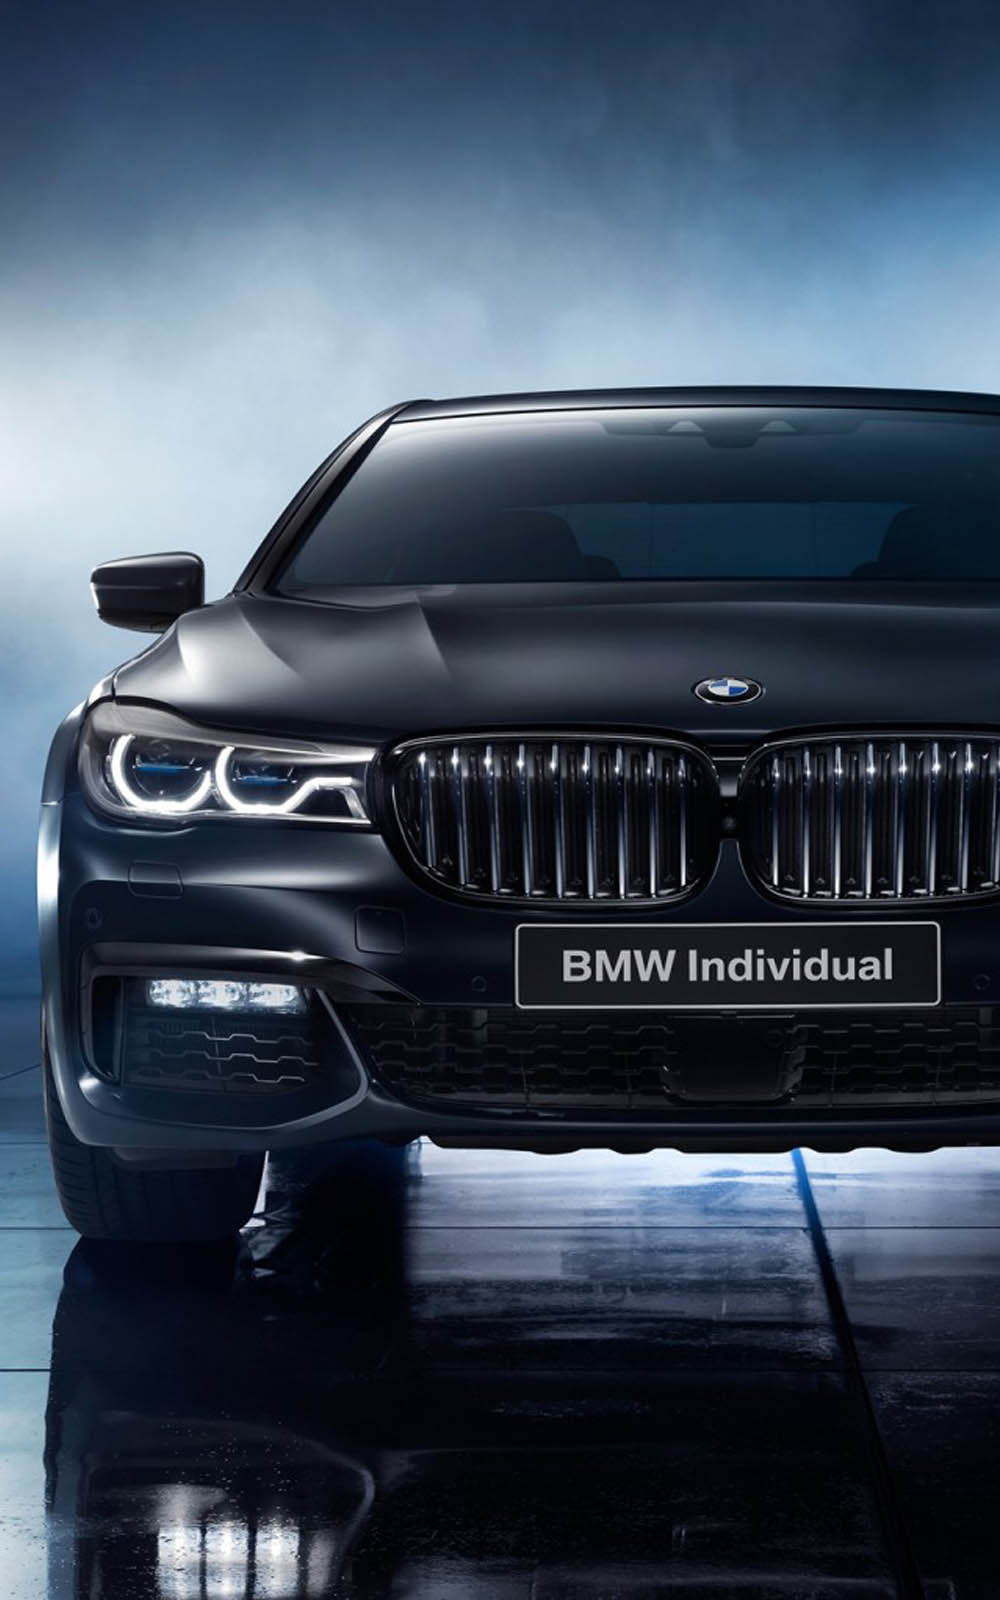 Bmw 7 Series Black Ice Edition 4k Ultra Hd Mobile Wallpaper